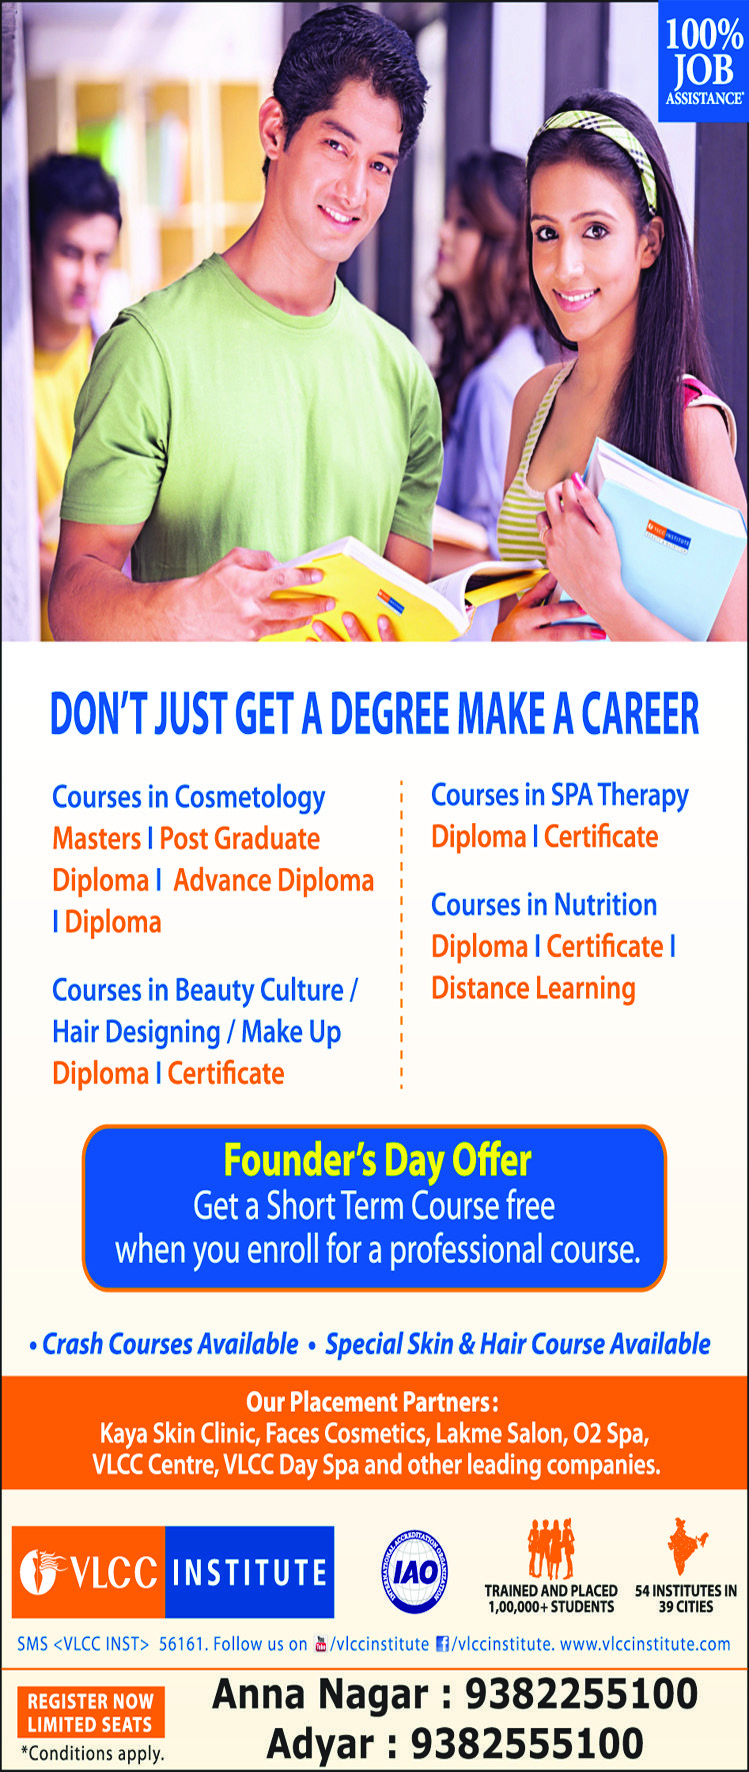 Founder's Day Offer On VLCC Institute  Get a Short Term